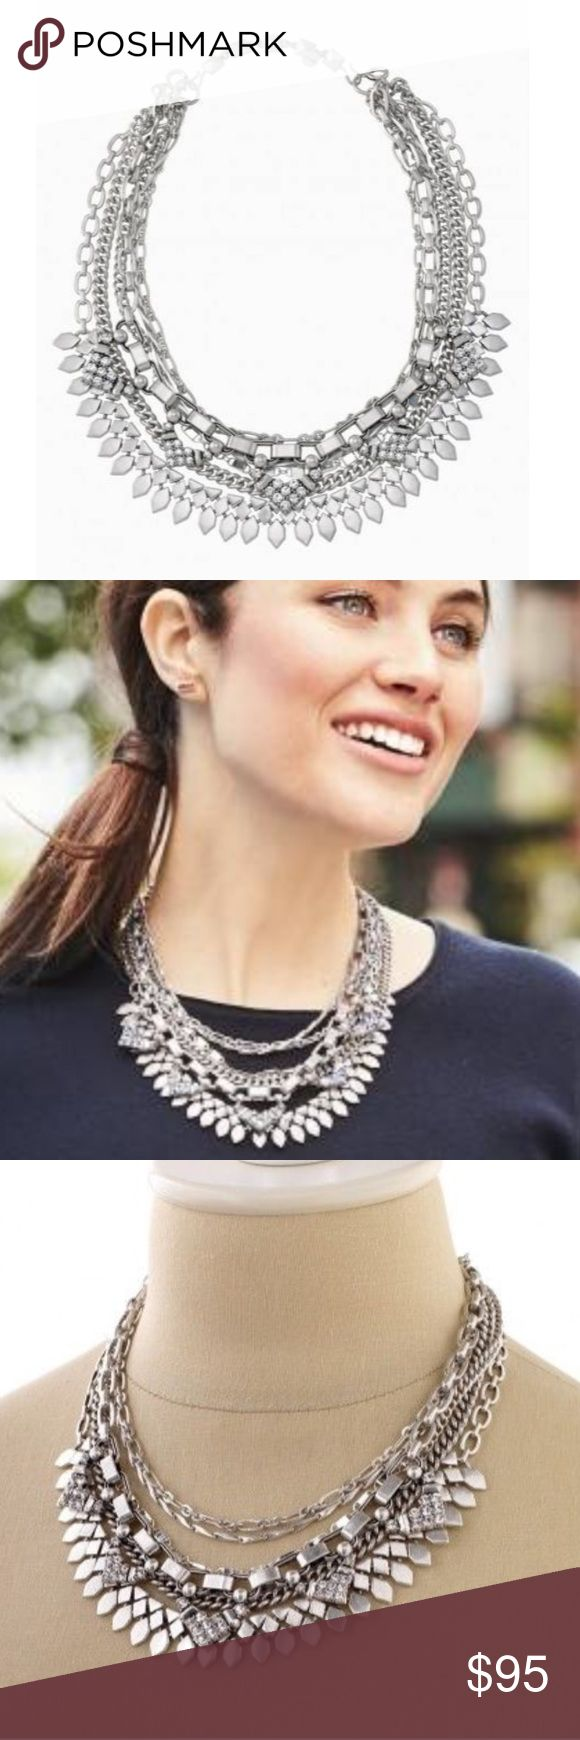 "Stella & Dot Silver Sutton Necklace There are five ways to wear statement necklace: long and loose for a laid-back look, clasped into a statement when you're feeling bold, plus or minus the sparkle strand, or just the sparkle when you're in the mood to shine. Mix of vintage and shiny silver plating. This one is new without tags, has been worn only once and is in perfect condition.   15"" with 3"" extender for shortest necklace. 31.5""longest length.  Spring clasp closure with hook extender…"